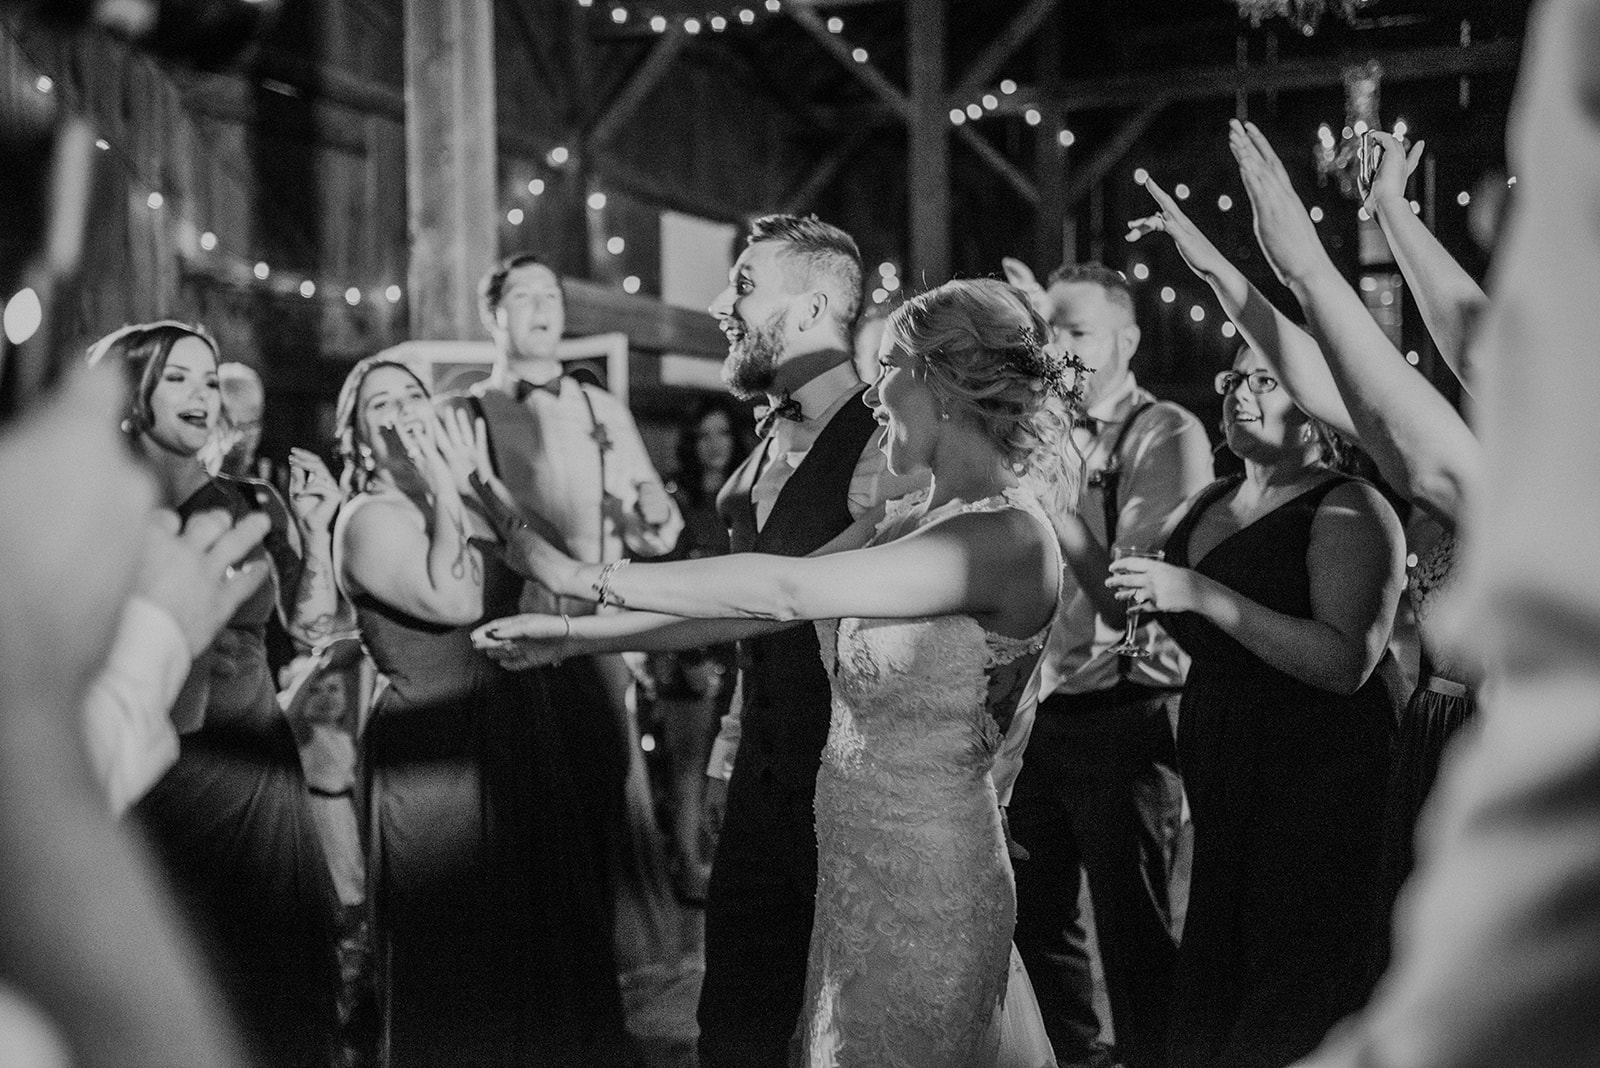 overthevineswisconsinwedding_1337.jpg